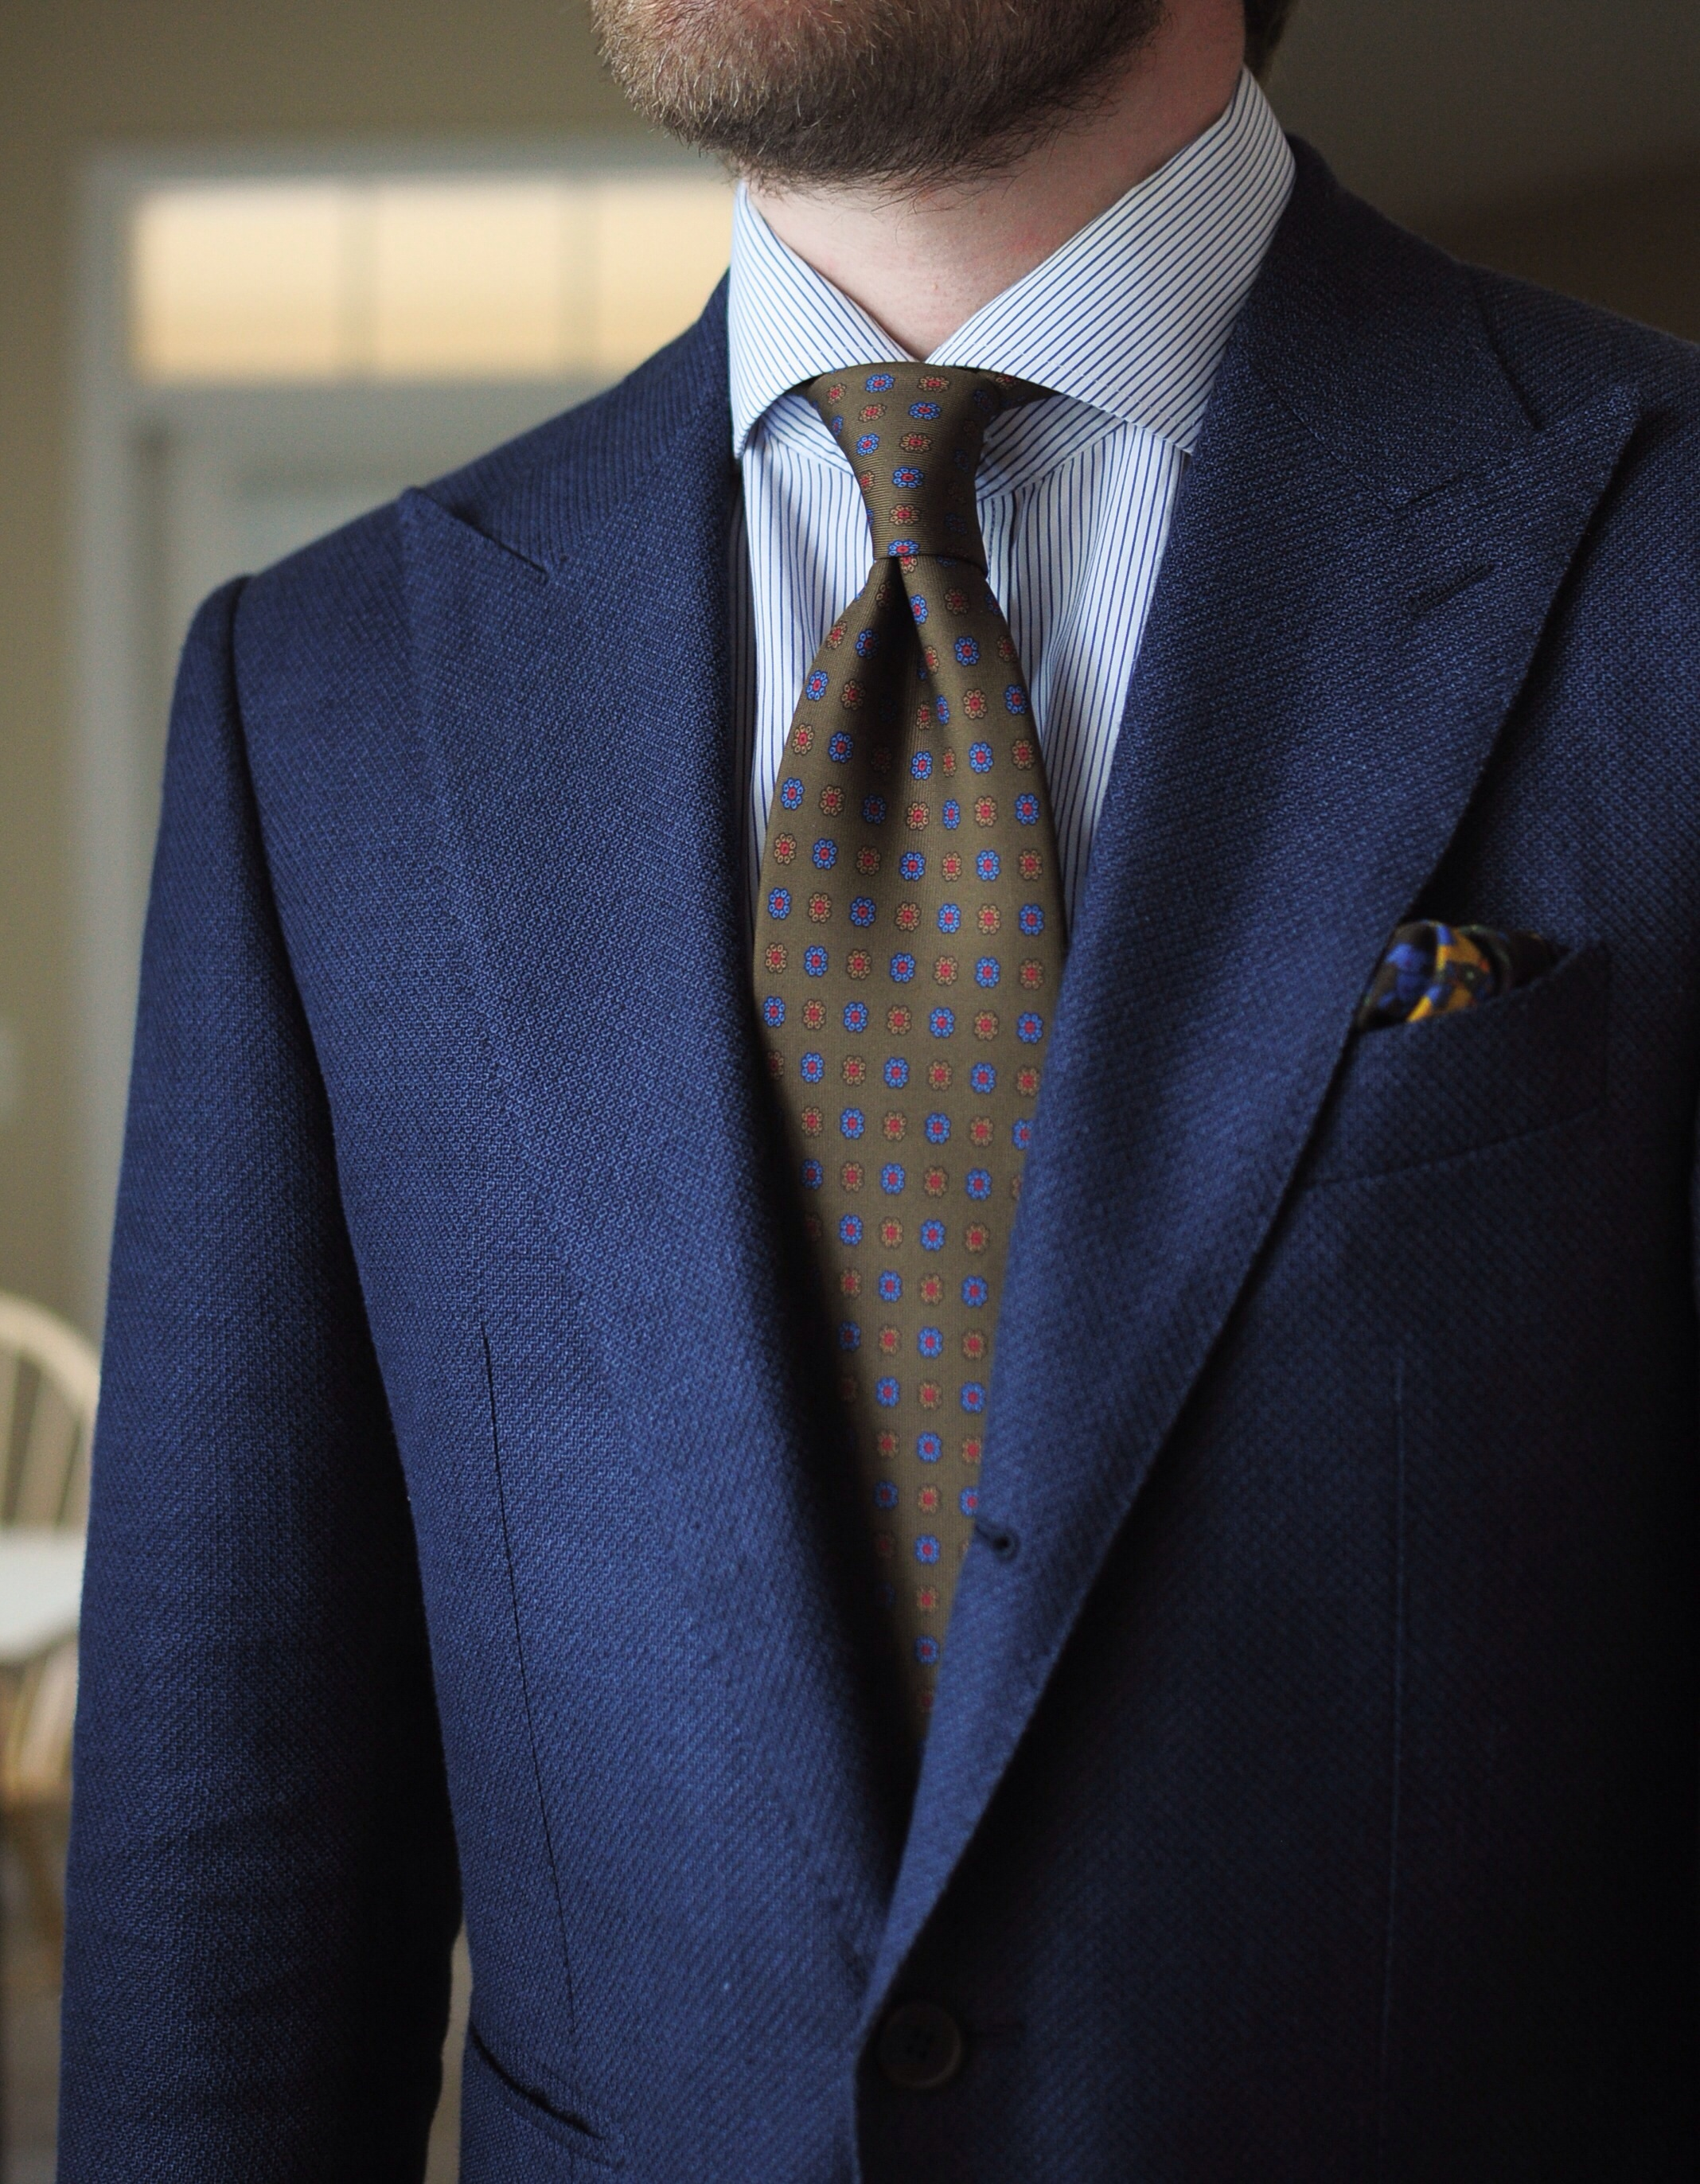 How do you create your tie dimple?